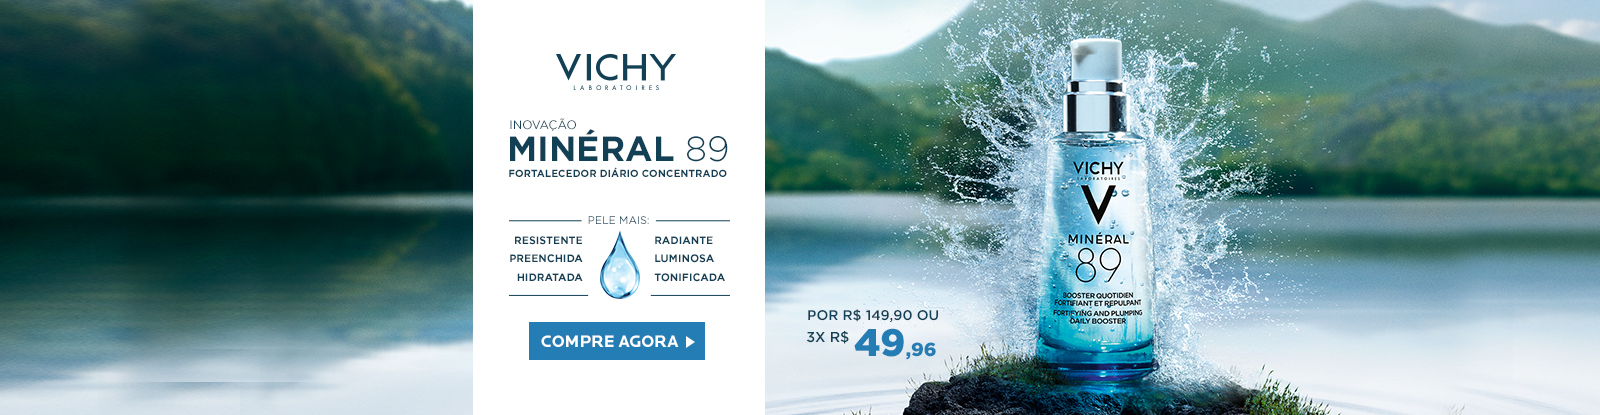 Vichy Mineral